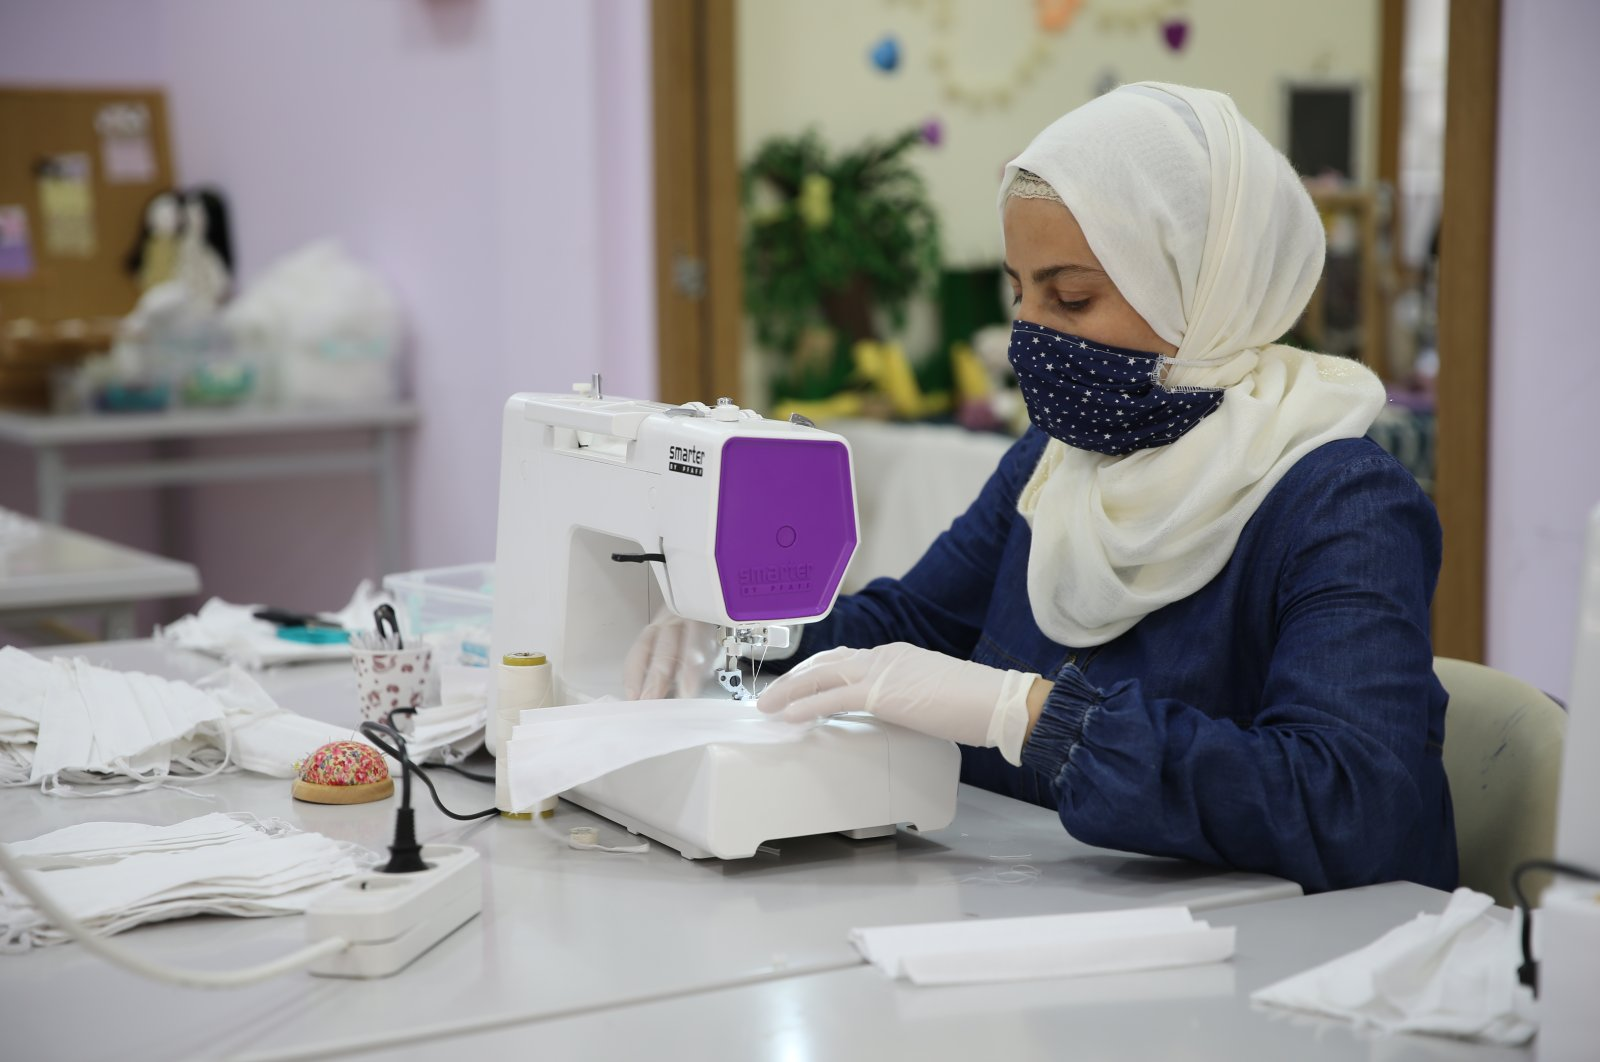 A Syrian woman sews a mask to be worn for protection against COVID-19 in Hatay, Turkey, June 14, 2020. (AA Photo)